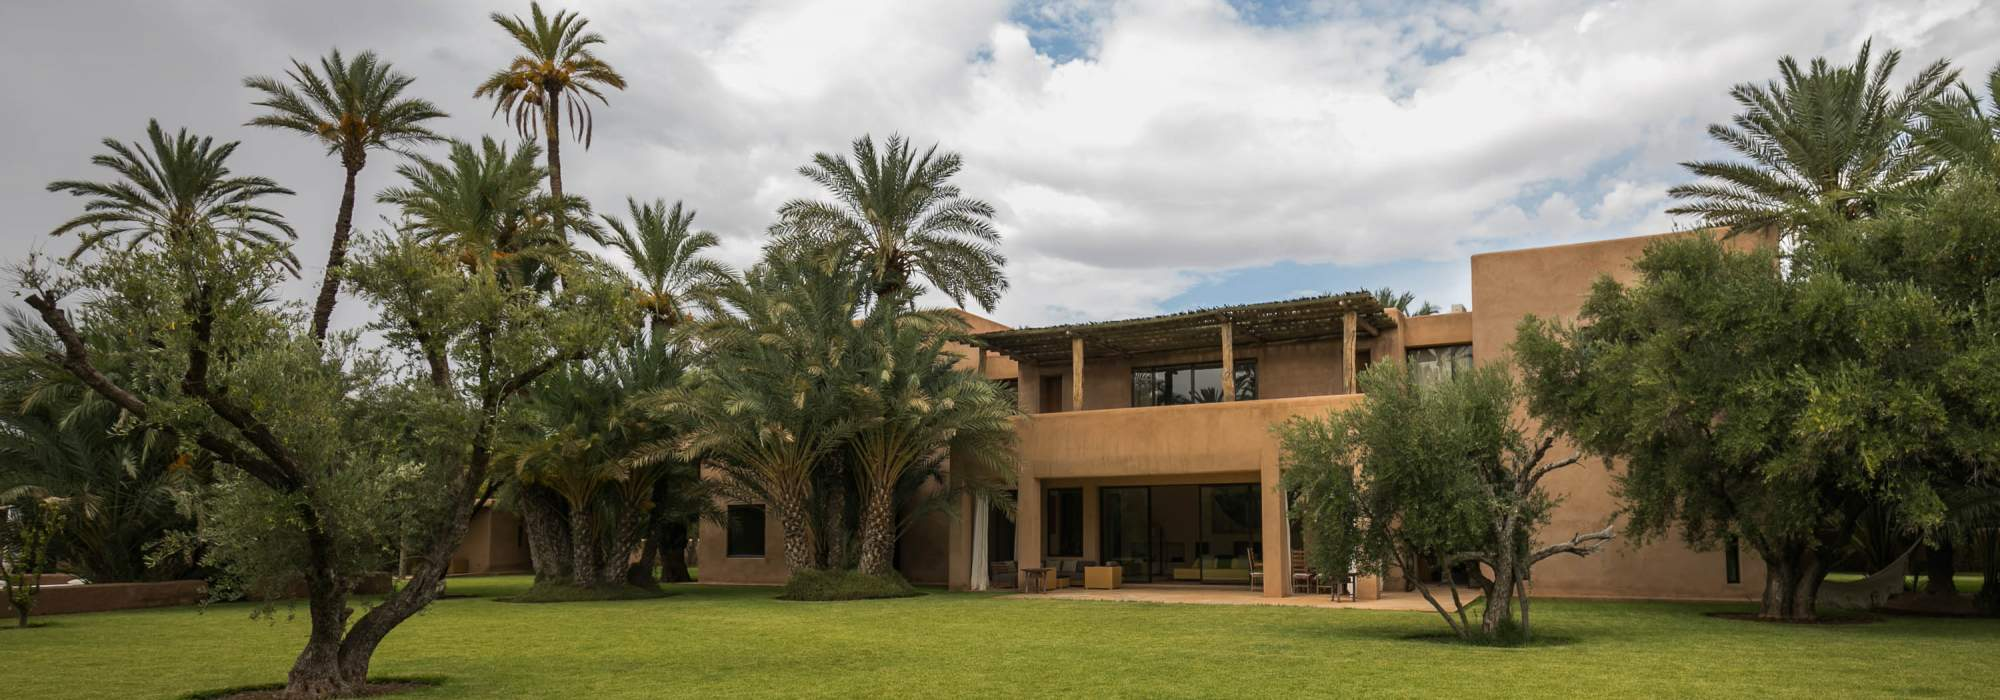 vente villa contemporaine palmeraie marrakech